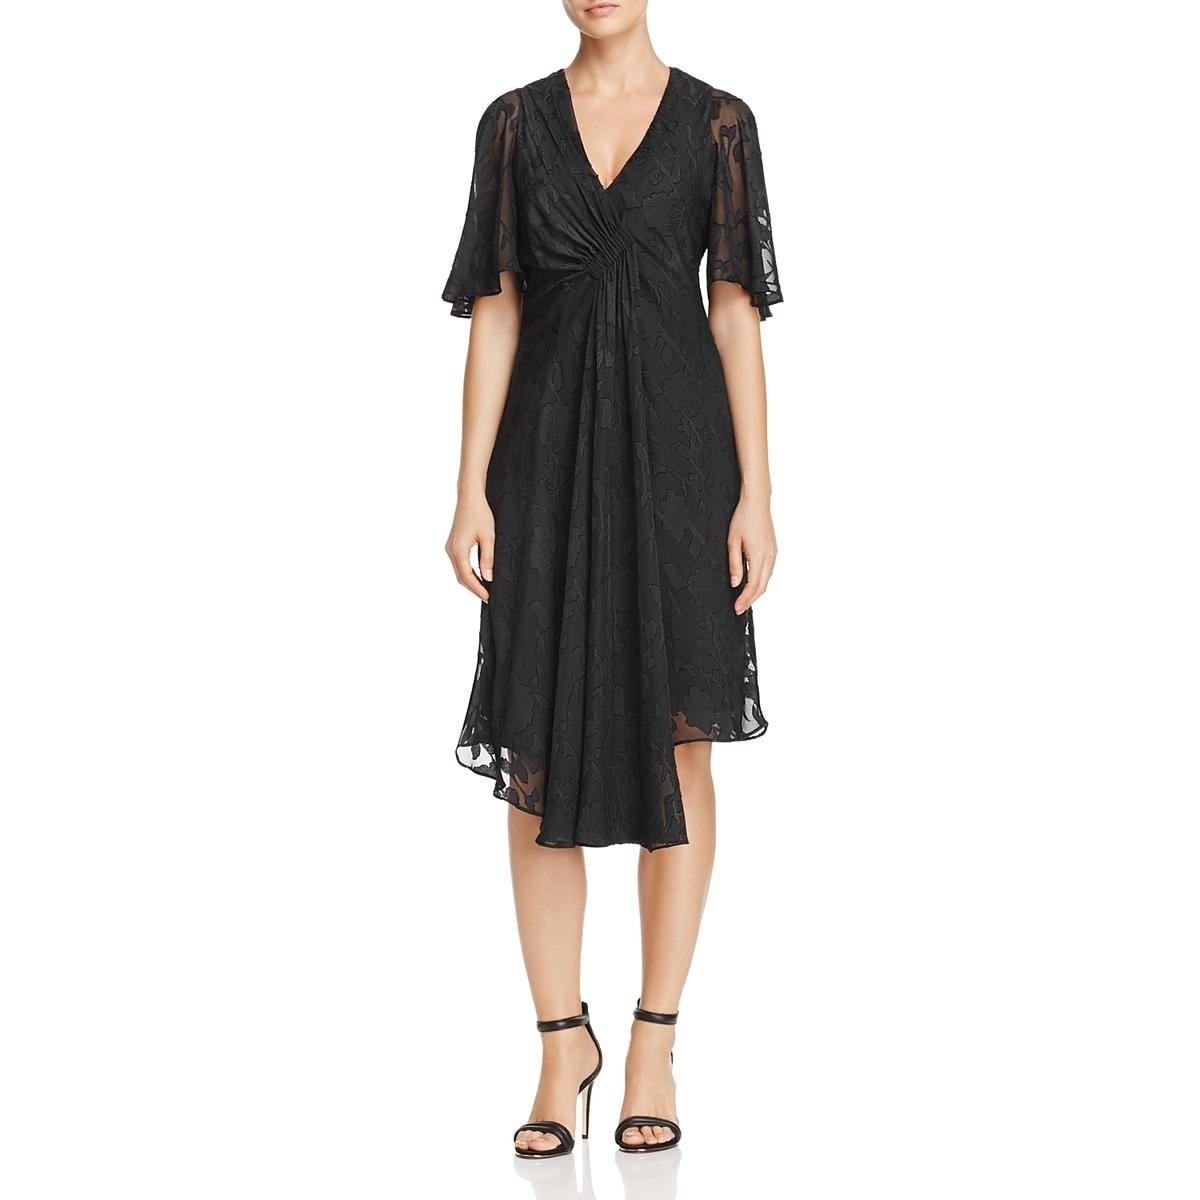 89371c228ae09 Shop Nanette Nanette Lepore Womens Cocktail Dress Jacquard Floral Sheer  Print - Free Shipping Today - Overstock.com - 26269819